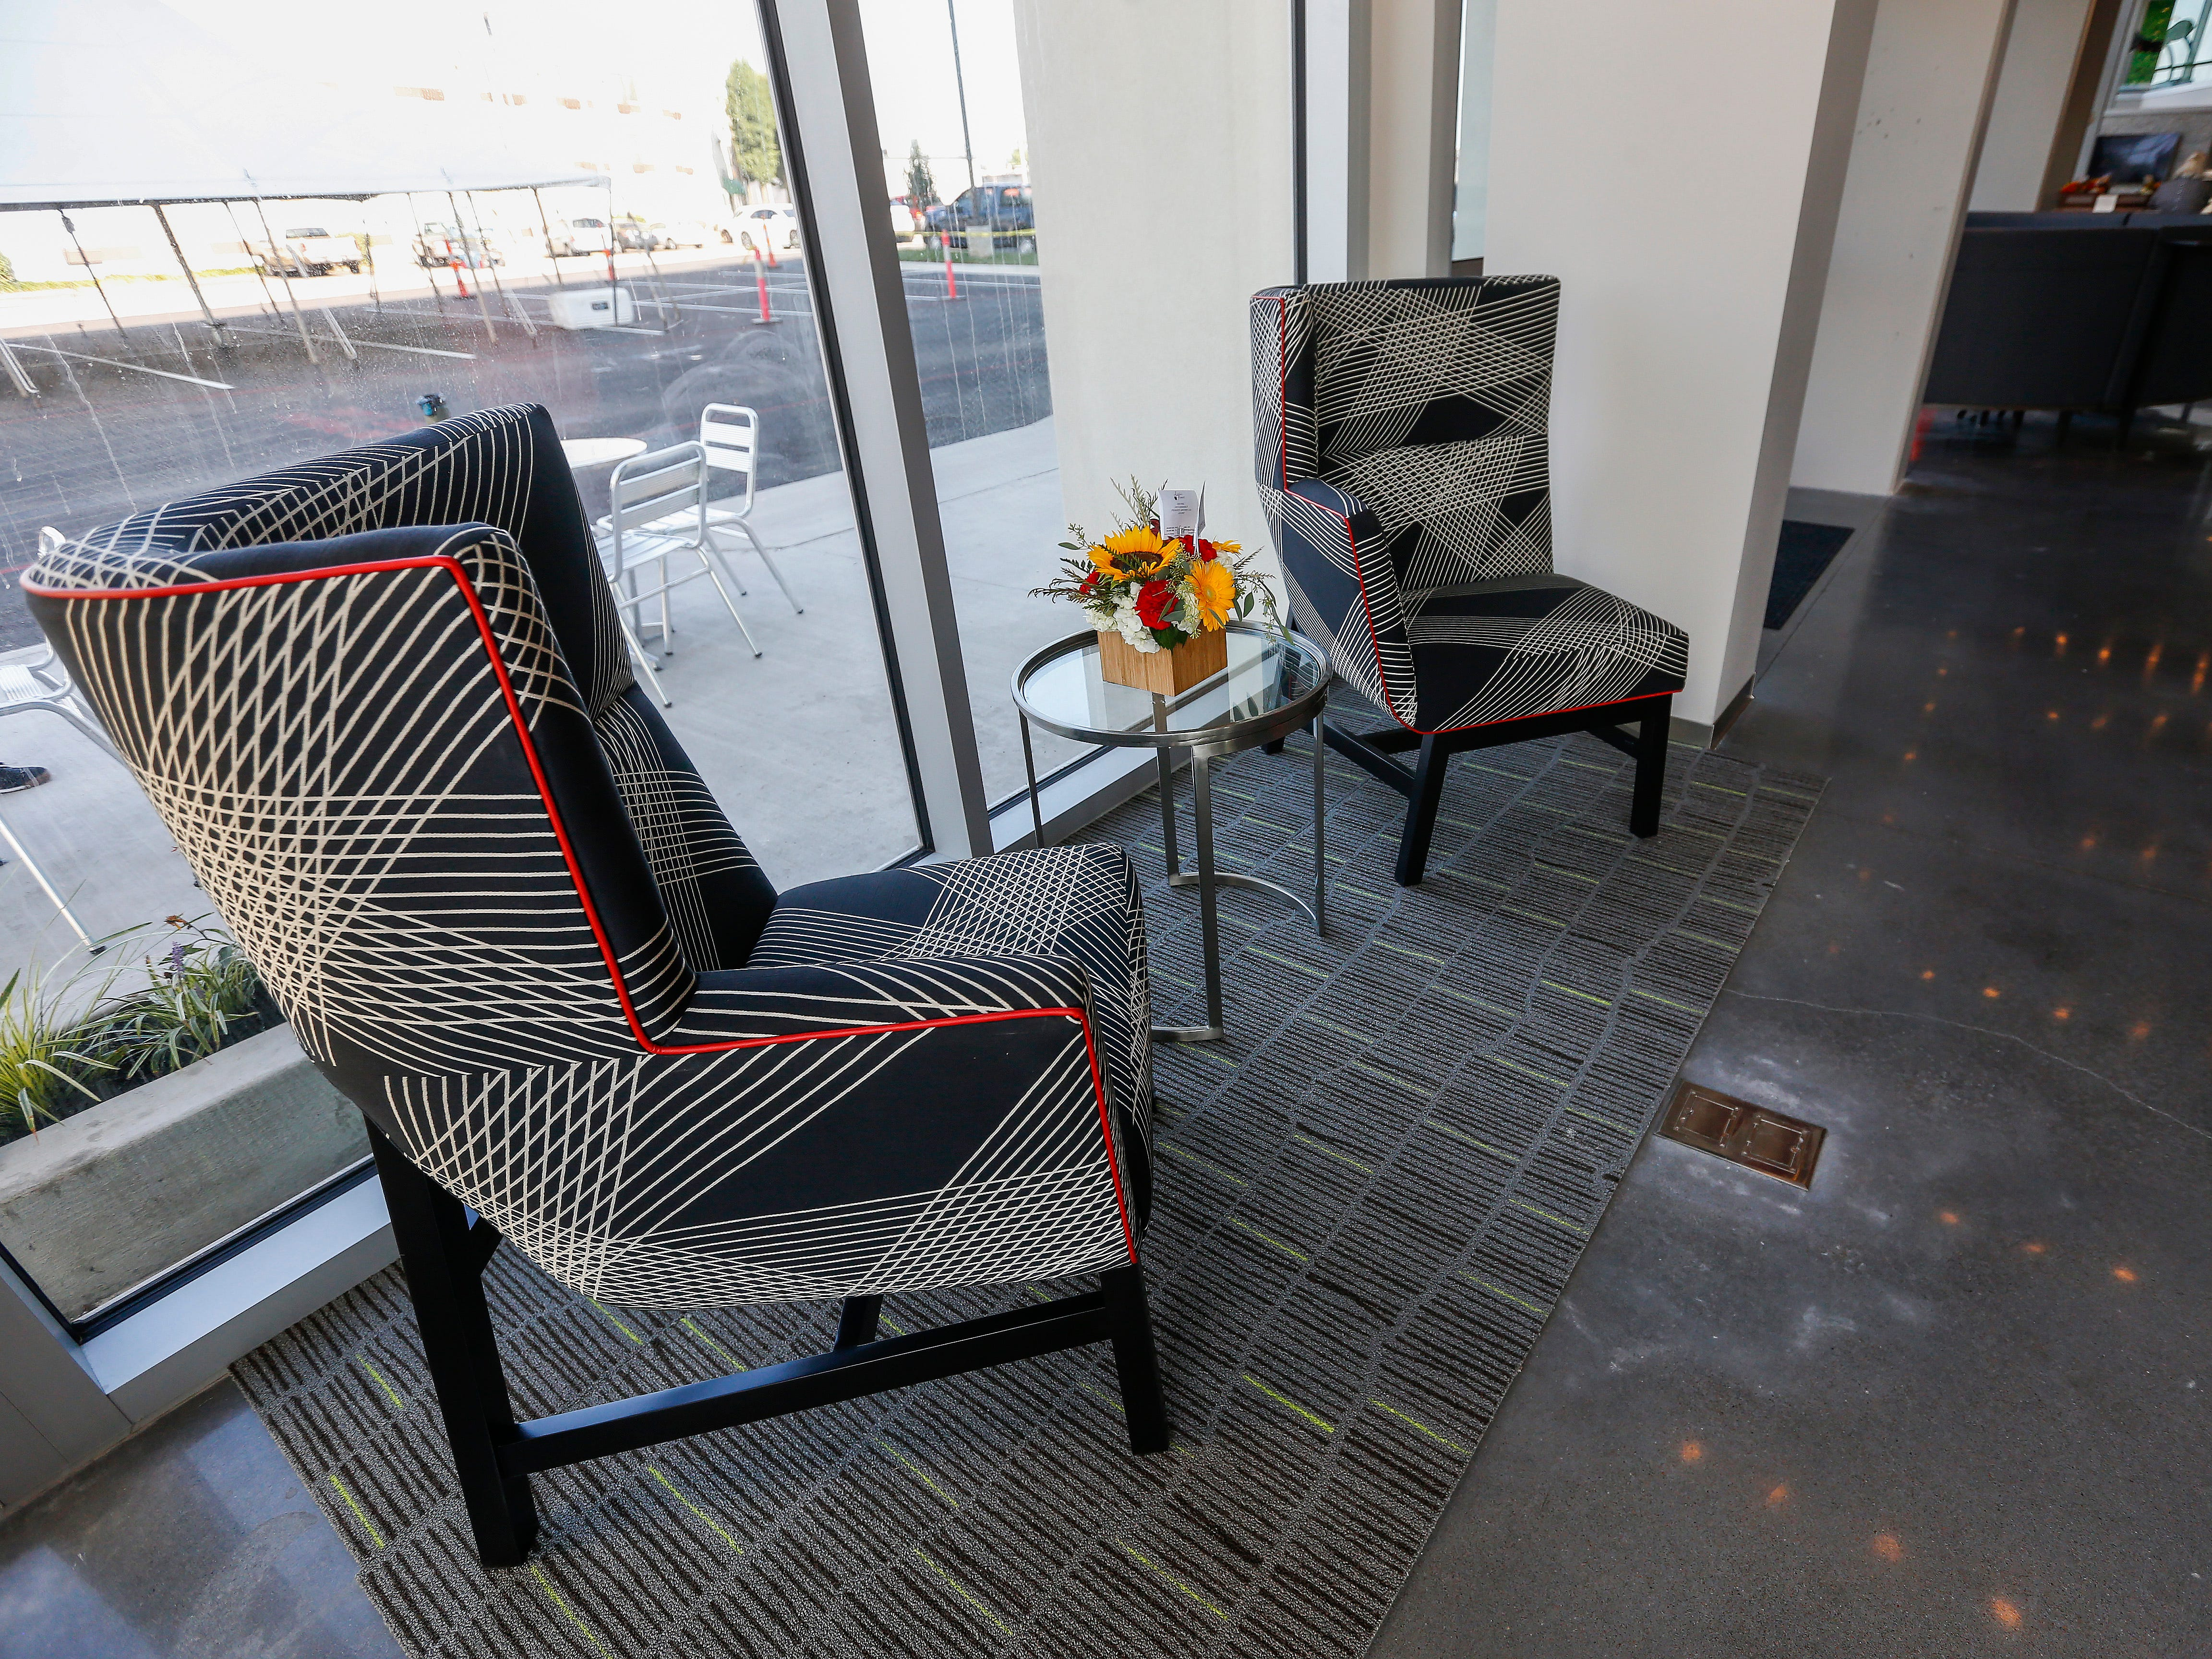 The new Vib Hotel, located at 1845 E Sunshine St., will hold its grand opening on Friday, Aug. 10, 2018.